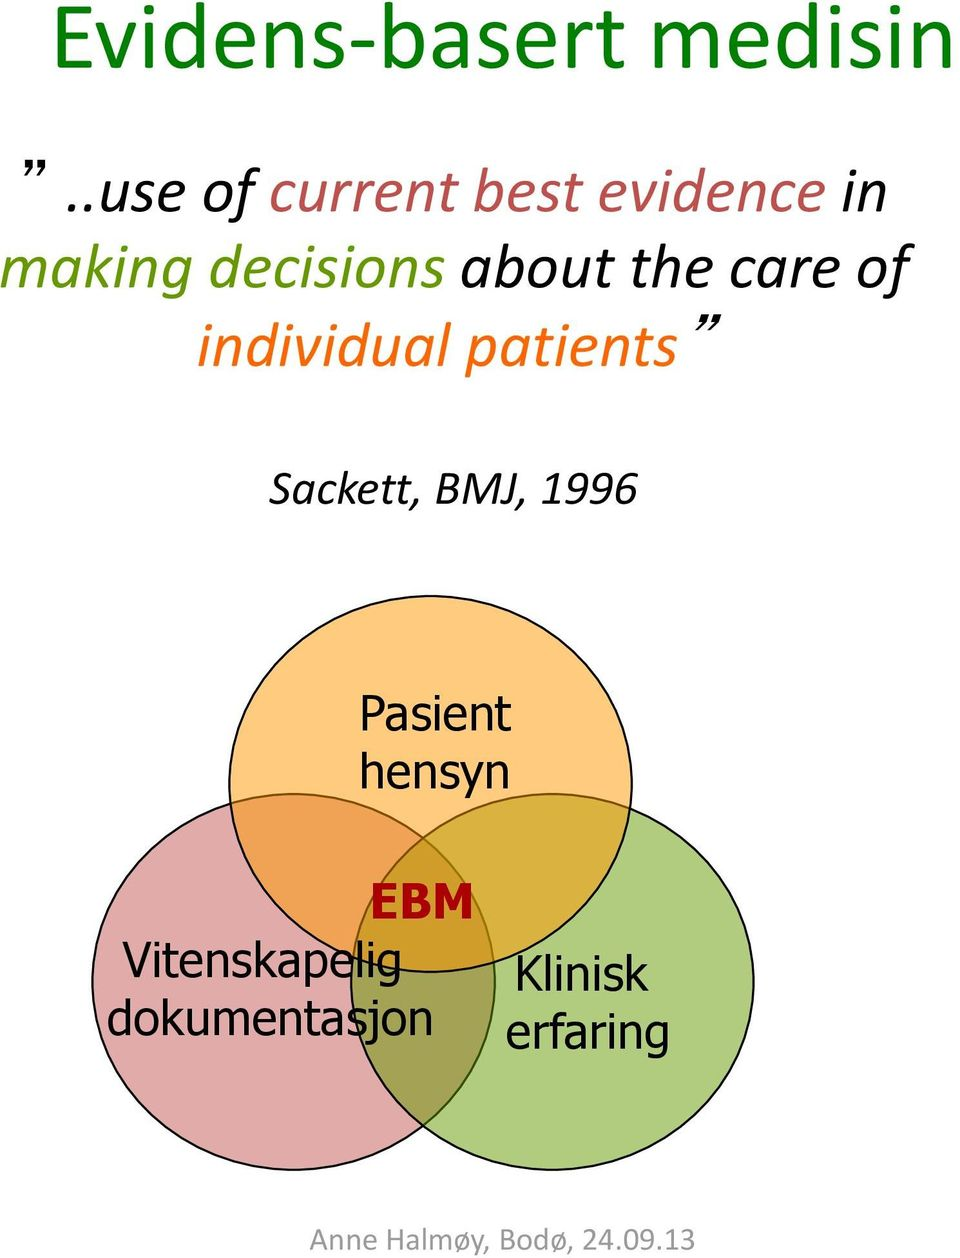 decisions about the care of individual patients